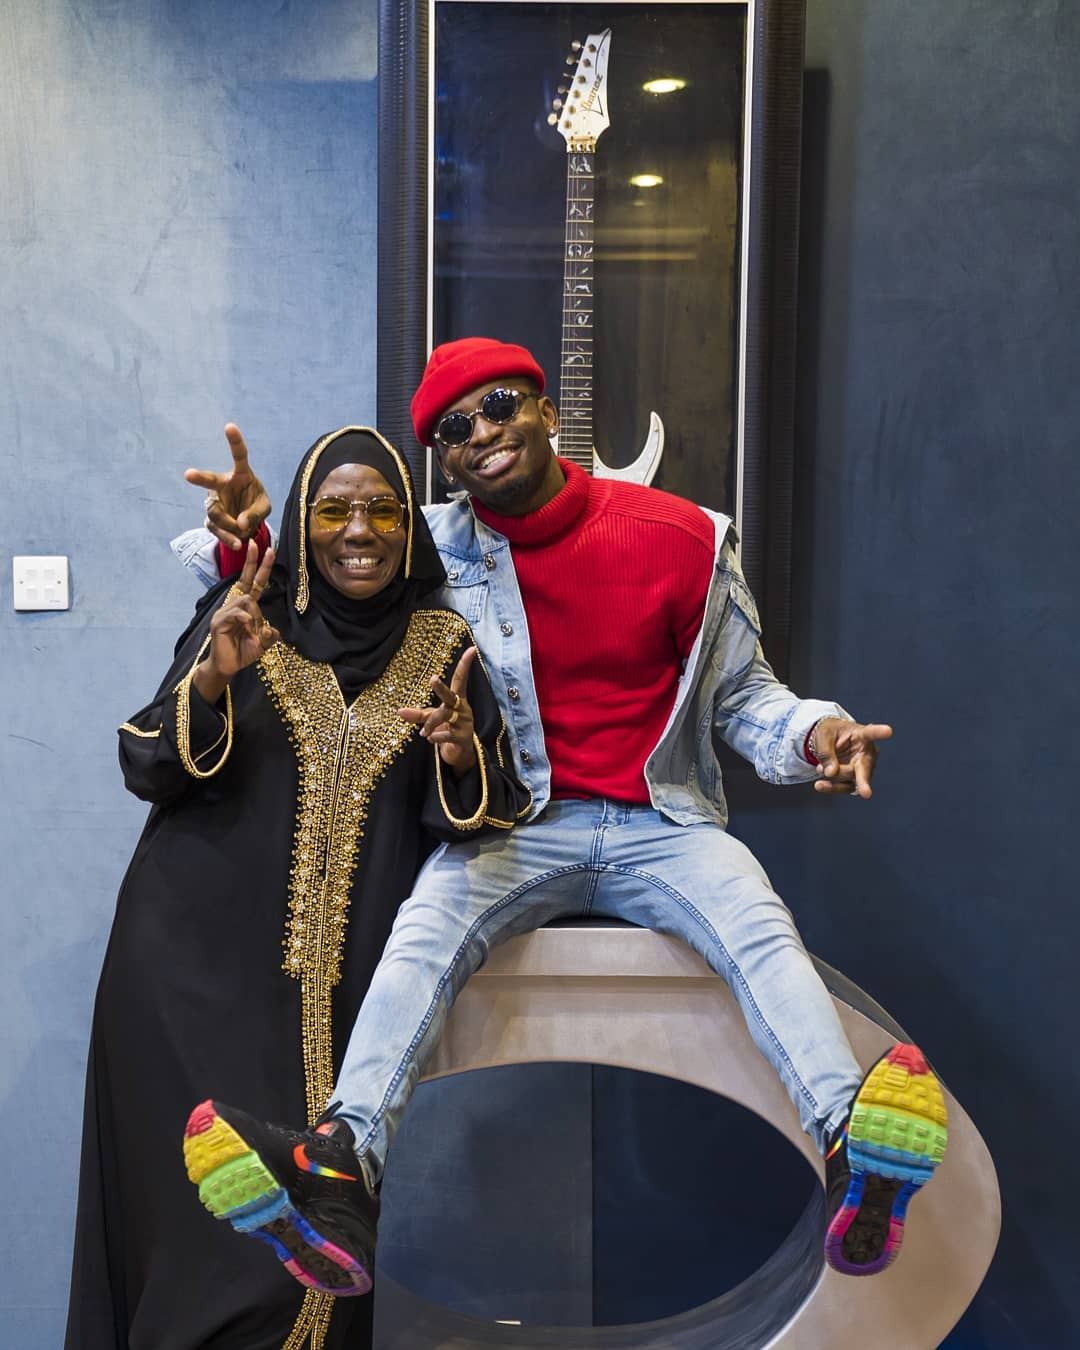 Diamond Platnumz and his mother - 'Were you there when I conceived Diamond?', singer's mum attacks fan